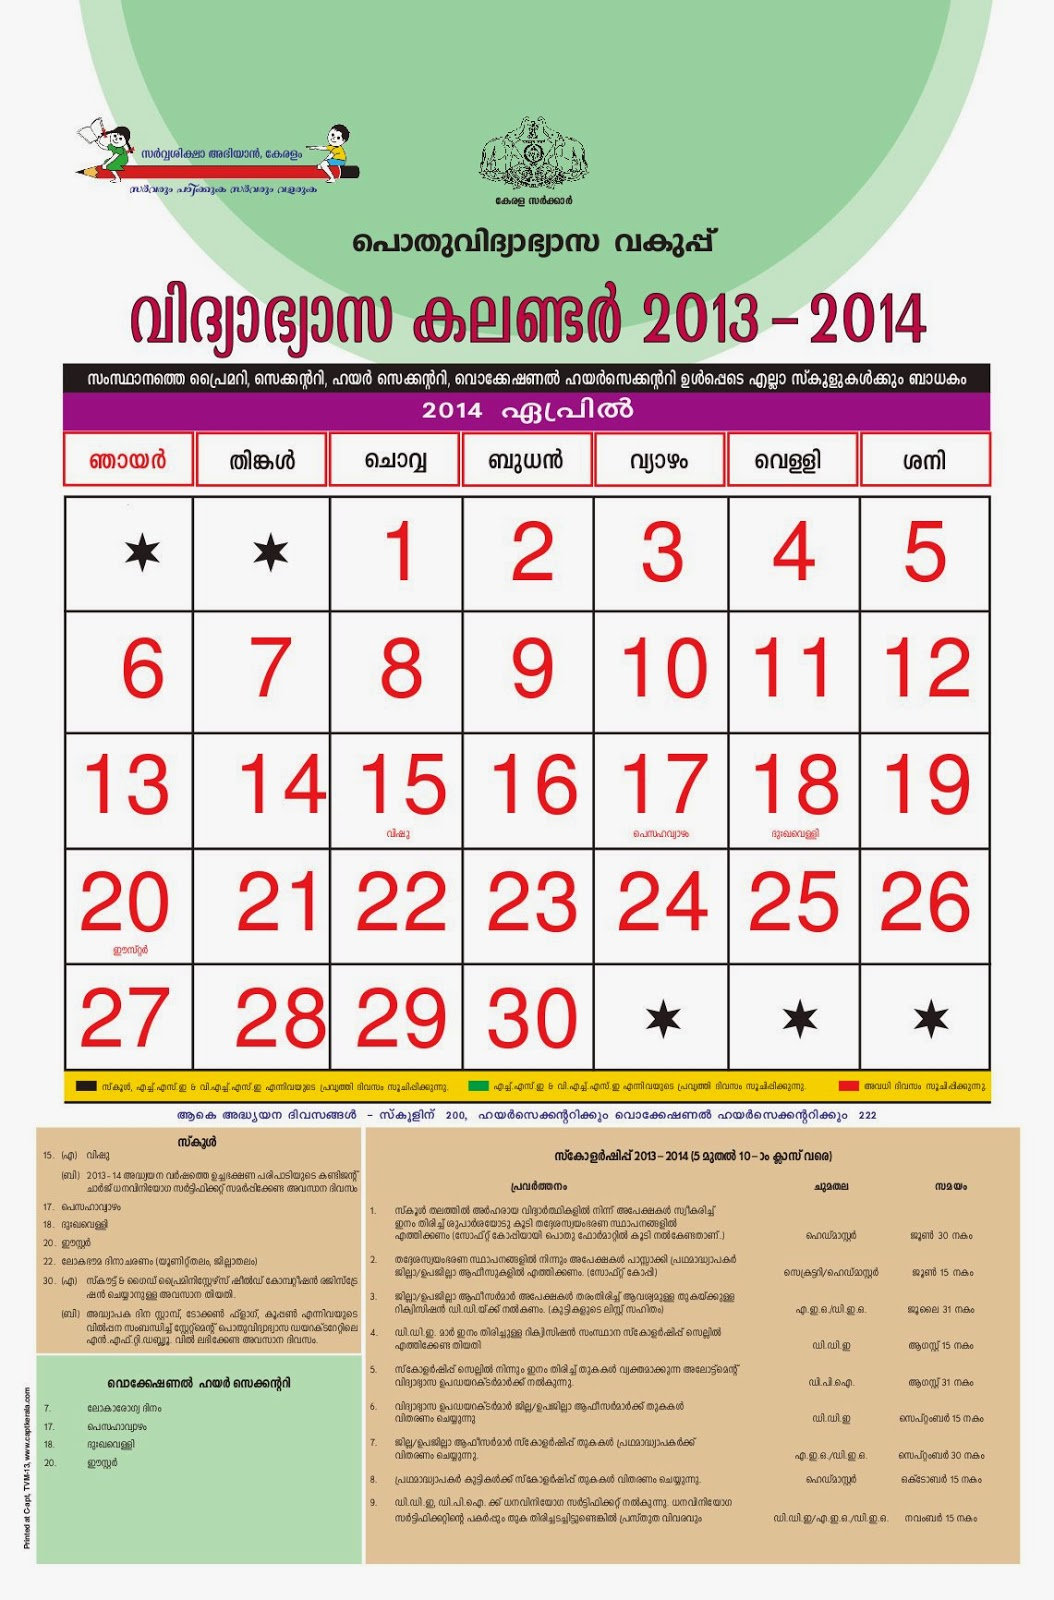 http://education.kerala.gov.in/downloads2013/announcements/edn_calendar_16.8.2013.pdf